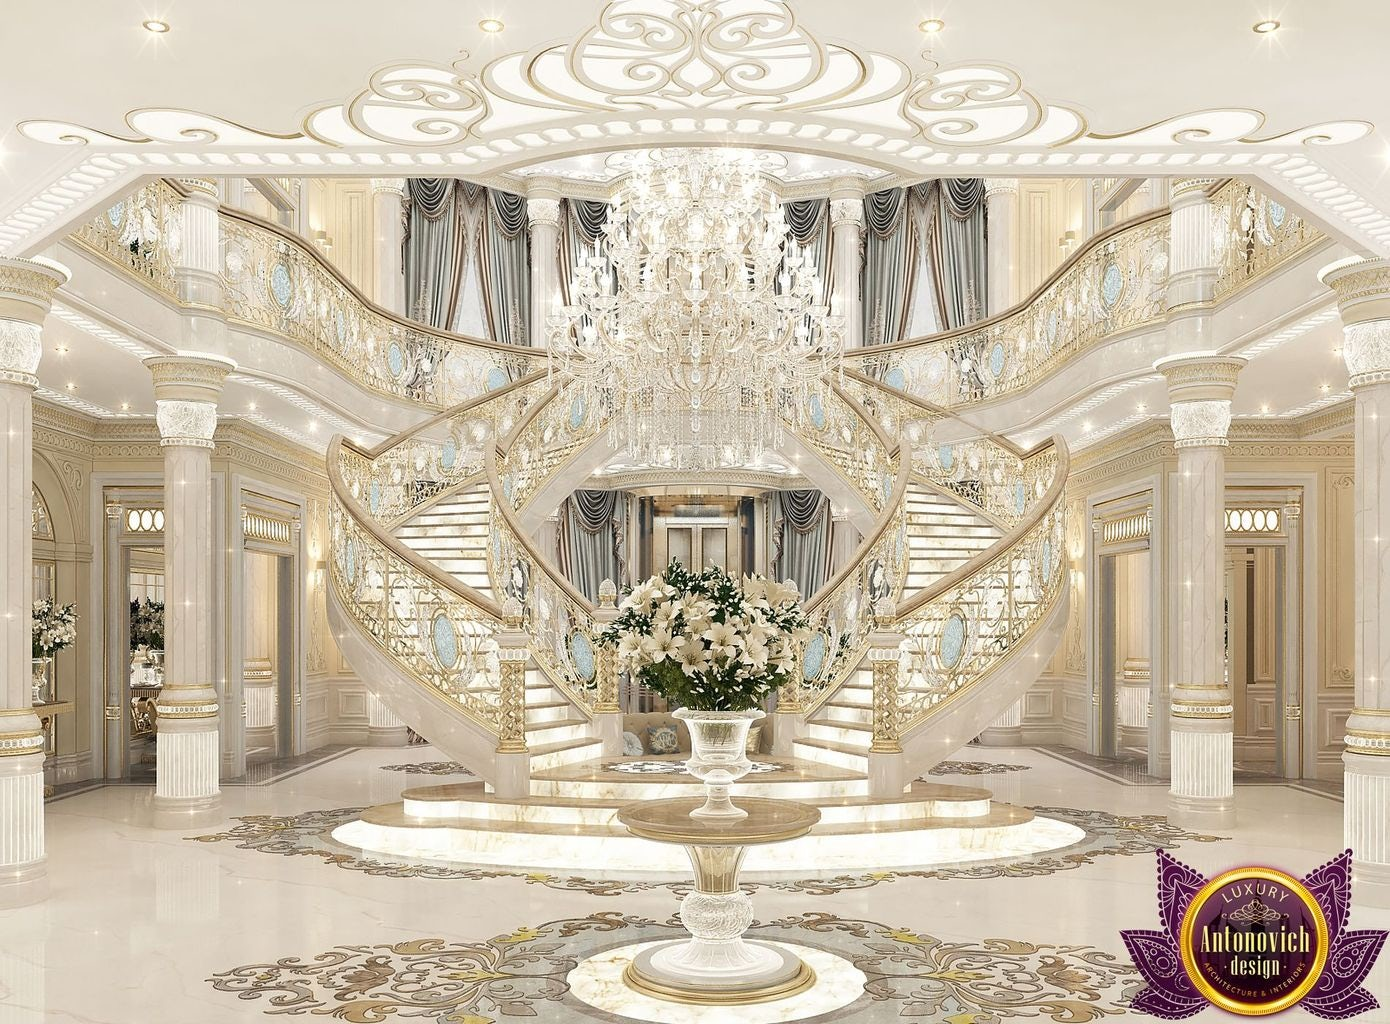 Palace interiors from luxury antonovich design on architizer